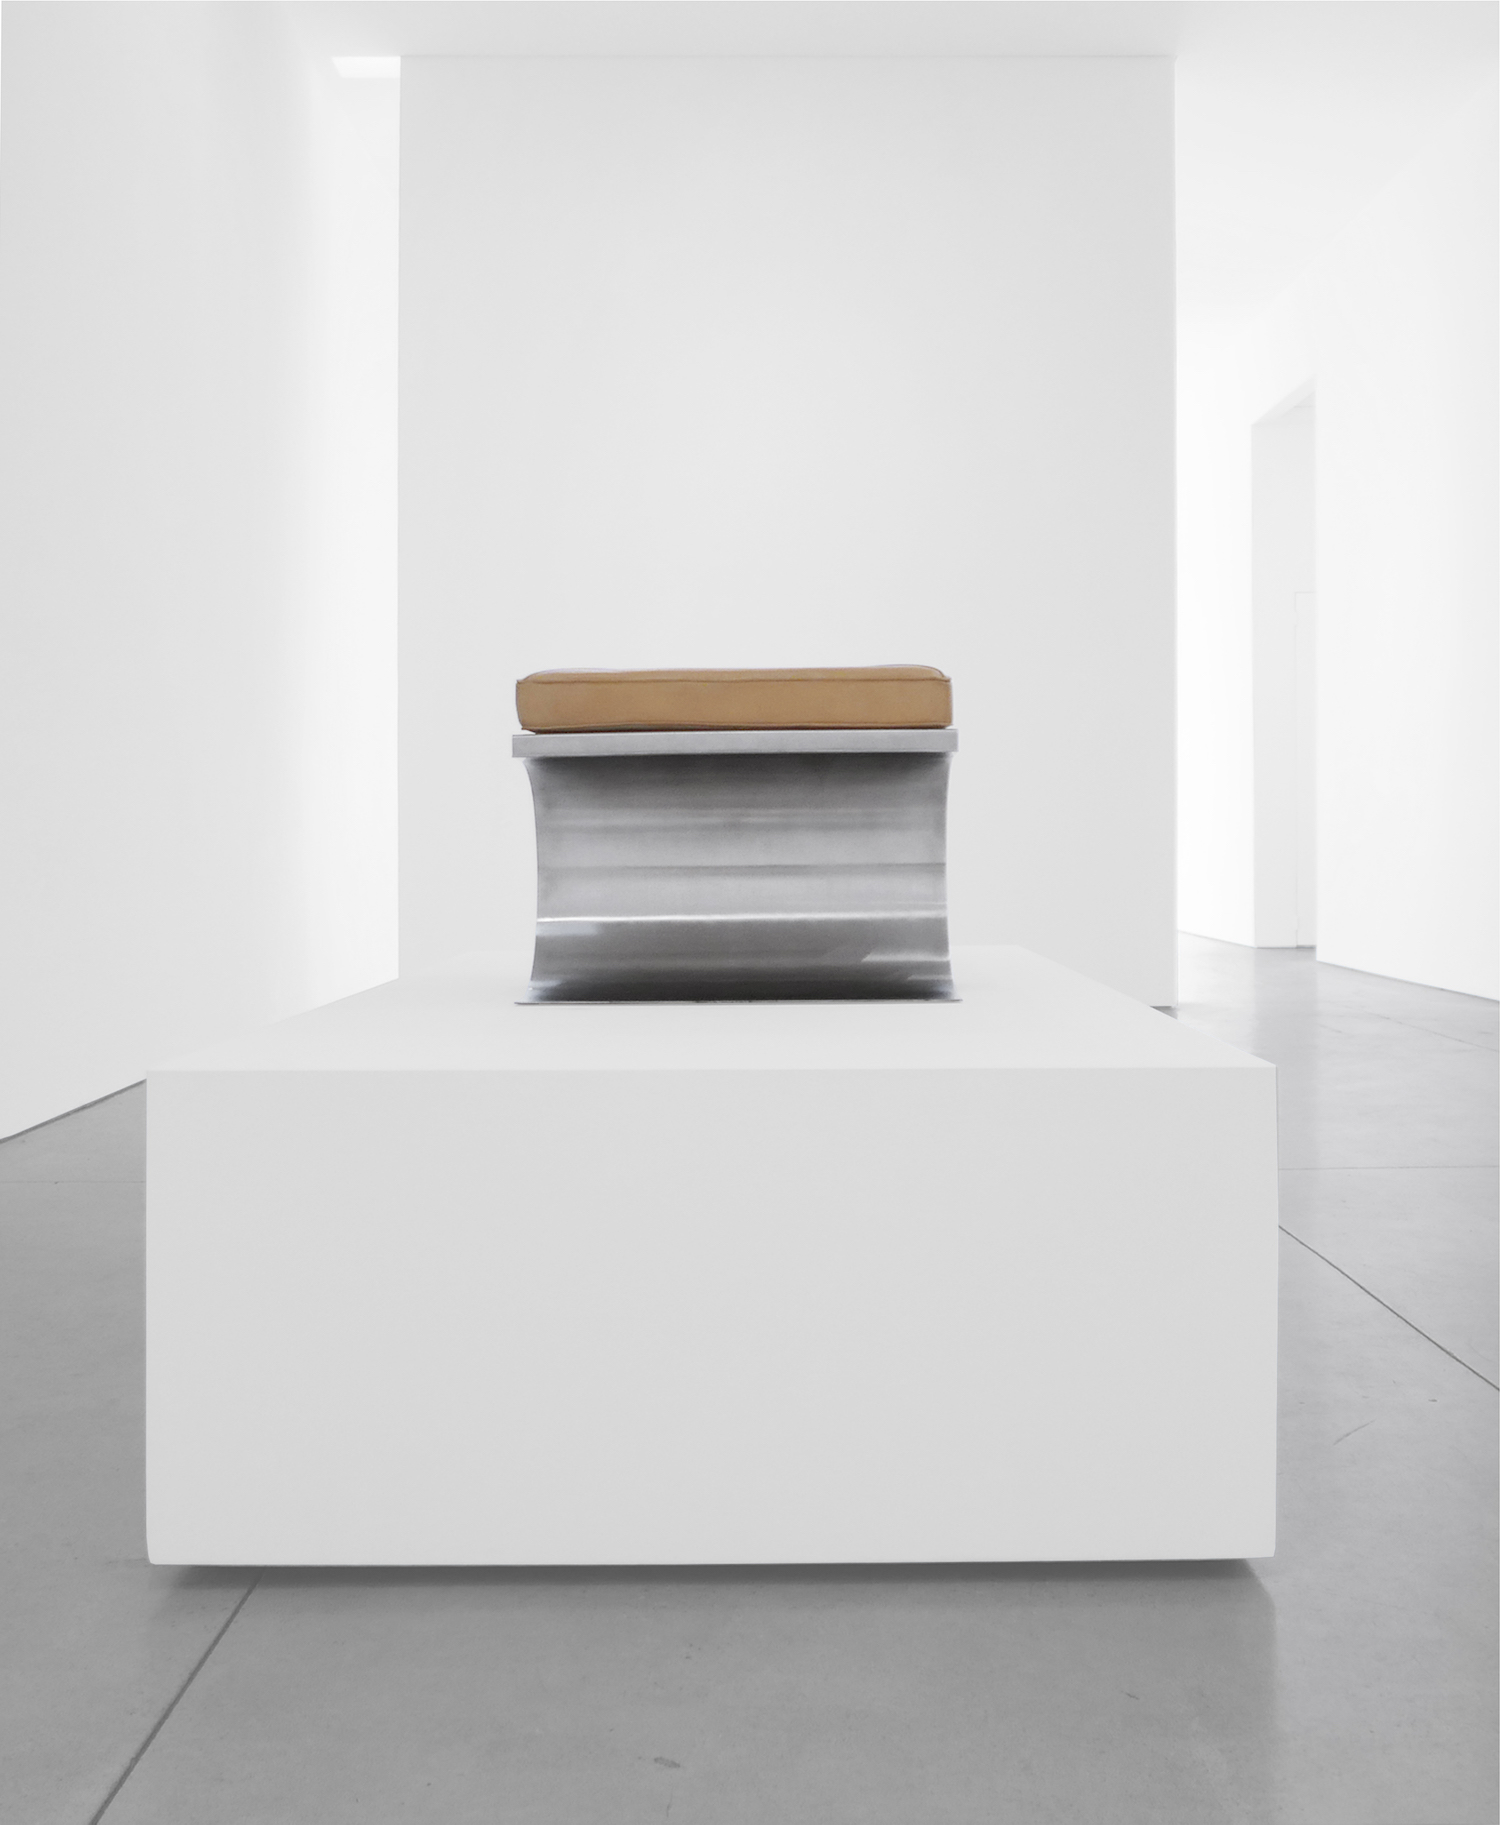 5. Micel Boyer, 'X' Stool, c. 1968, stainless steel and leather upholstery, 16H x 19.75W x 19.75D inches.jpg